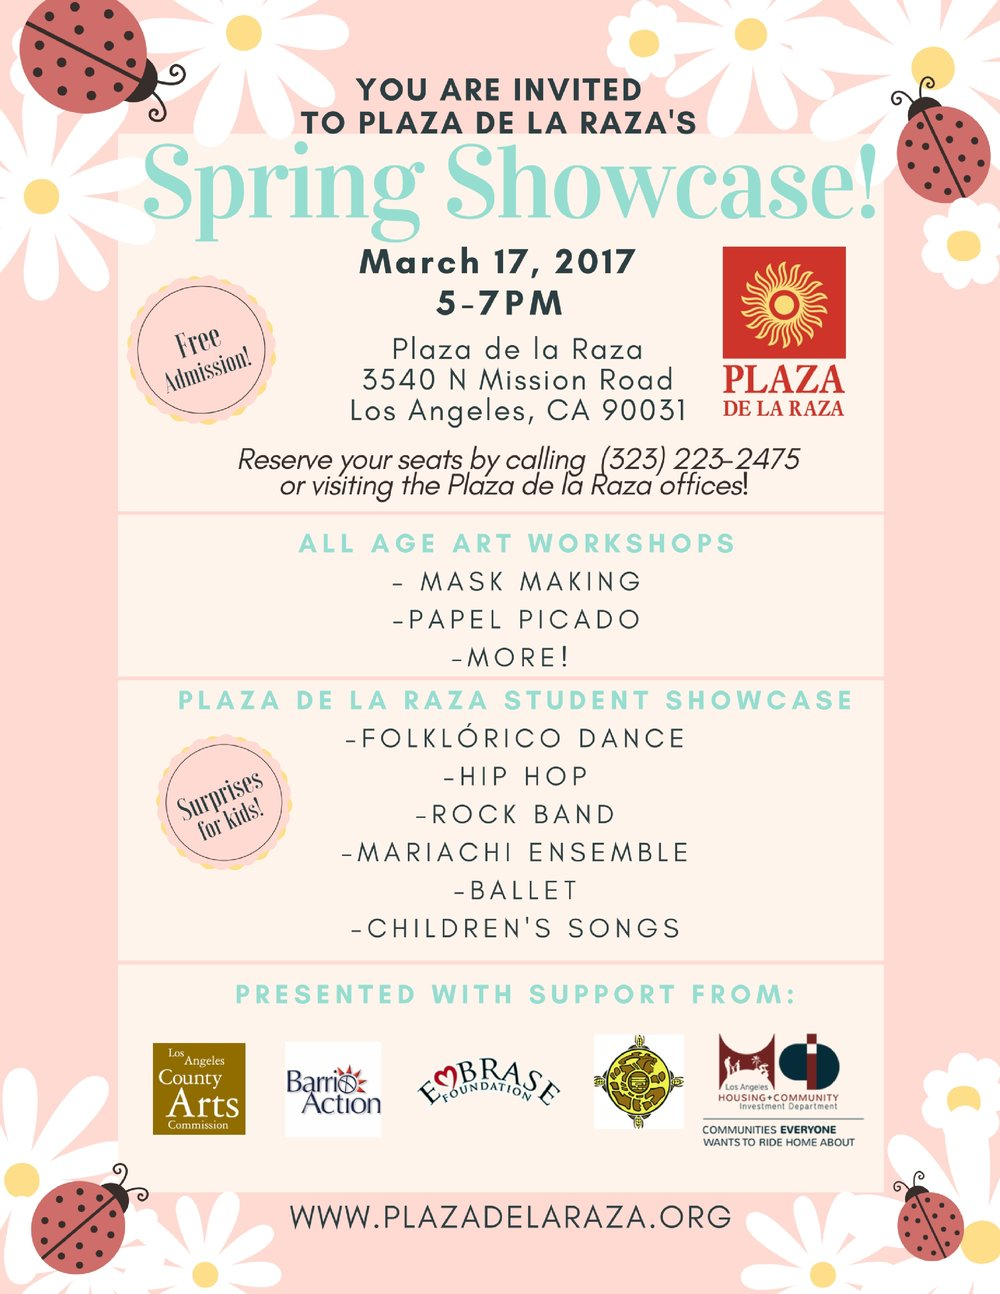 Our Spring Showcase will be held on Friday, March 17, from 5pm-7pm.  Join us for all ages art workshops in mask making, papel picado, and more!  Some of our best dance and music students will also perform for the community.   Plus, we'll have special surprises for the kids!